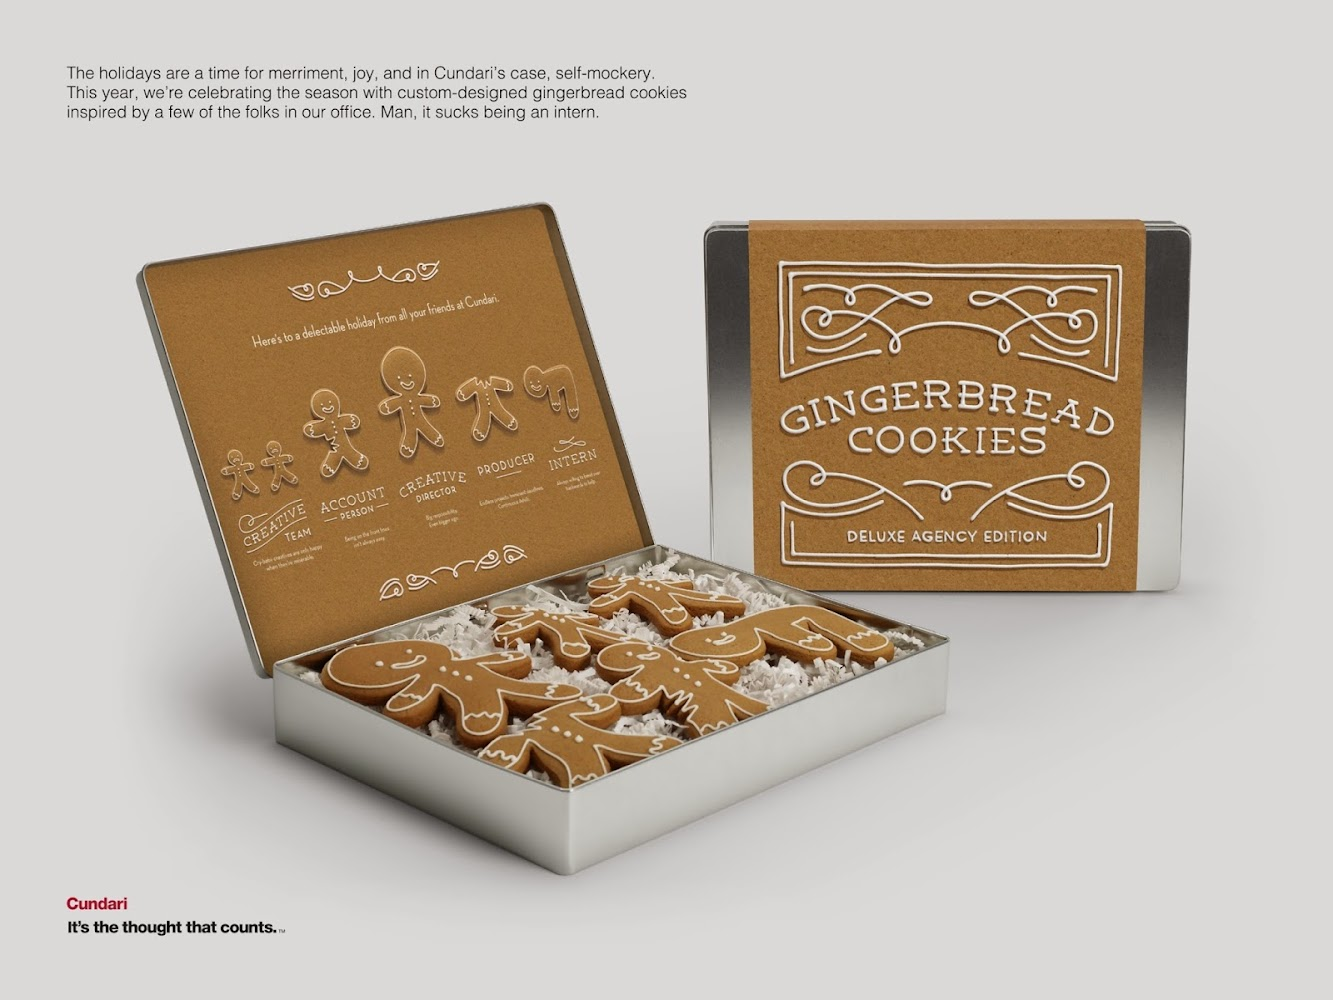 Toronto Ad Agency Cundari Has Some Fun With Gingerbread Cookies